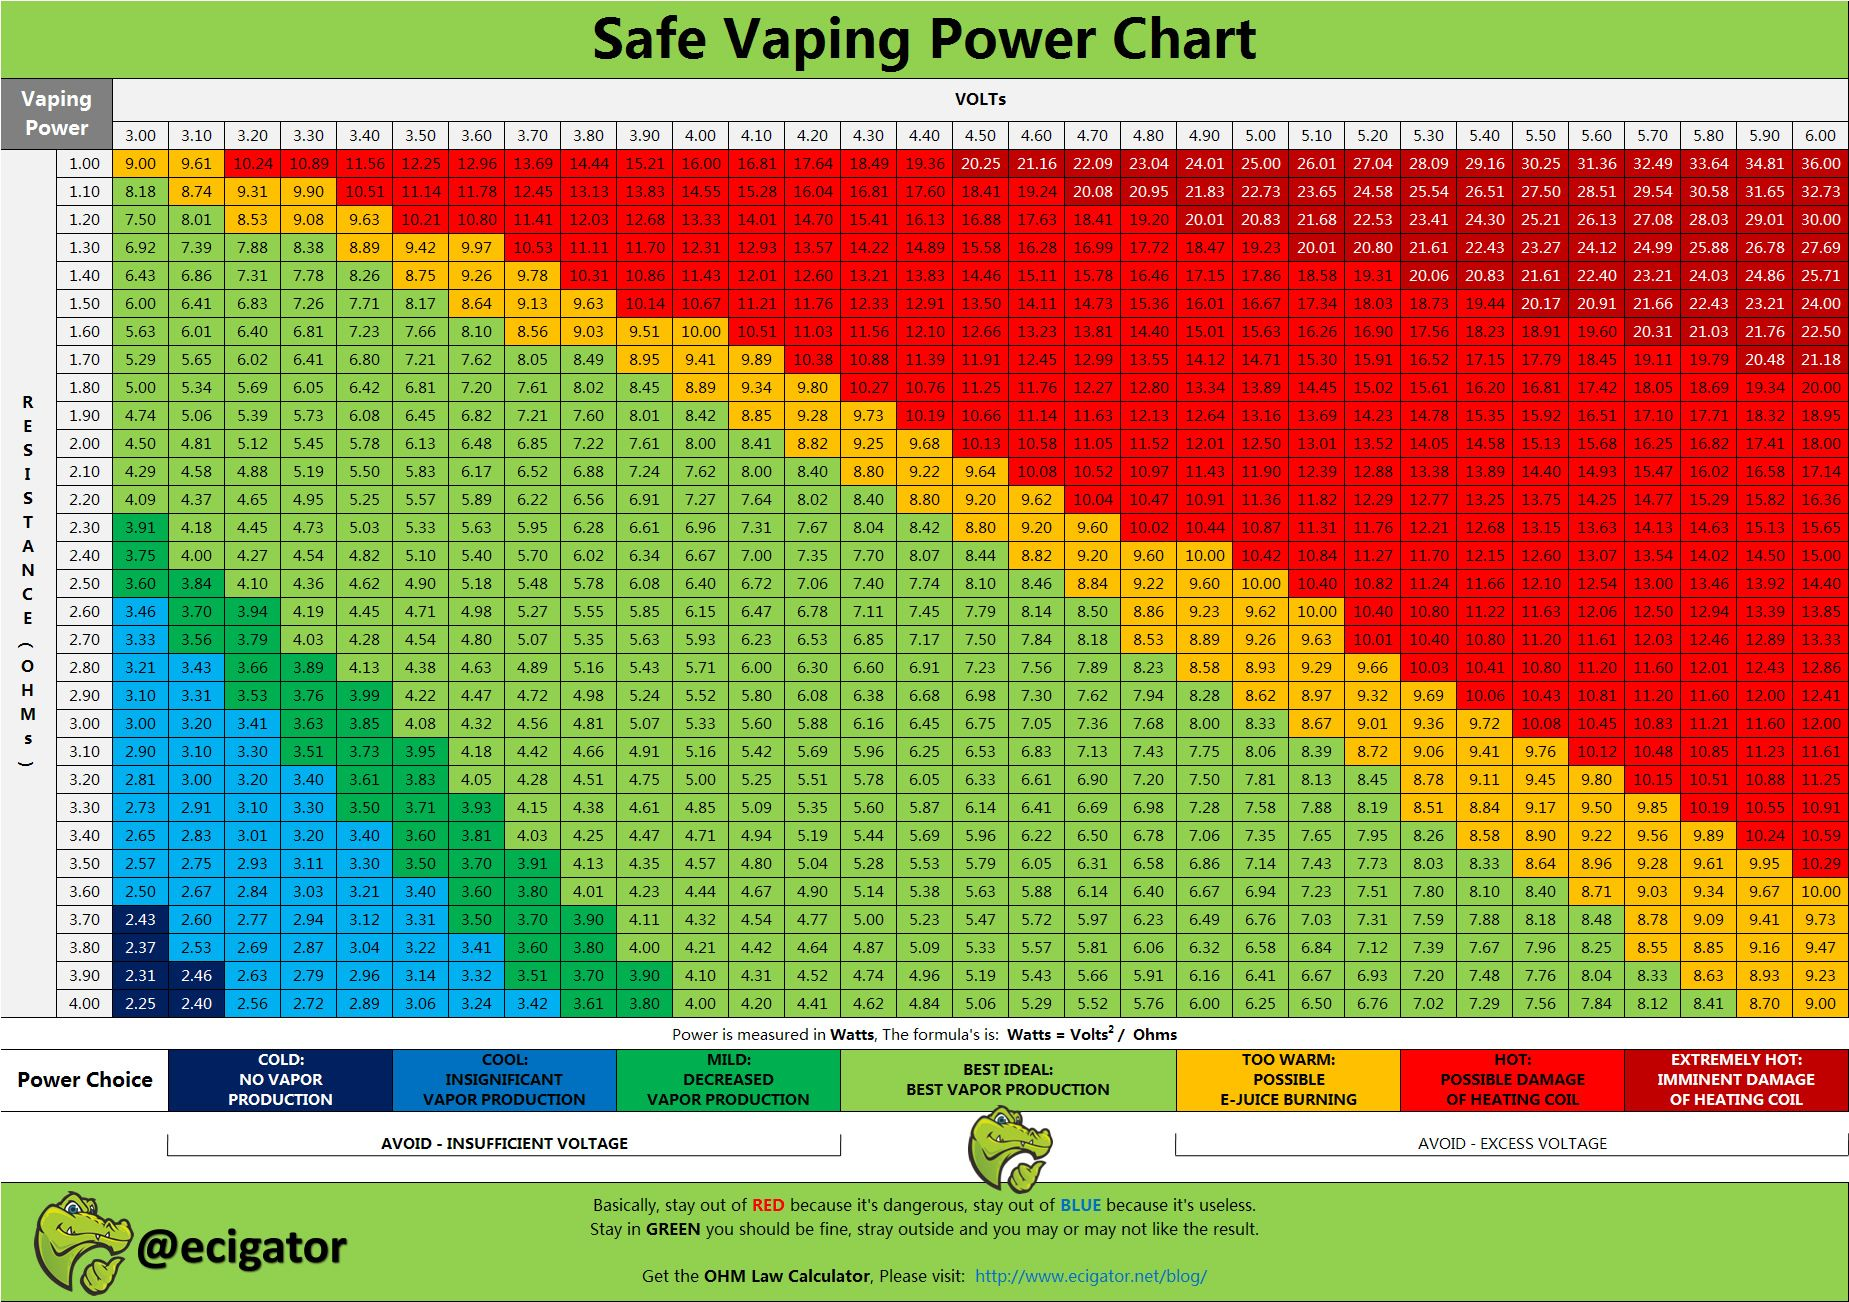 Sub ohm chart safe vaping power vape news pinterest also sendilarlasmotivacionales rh